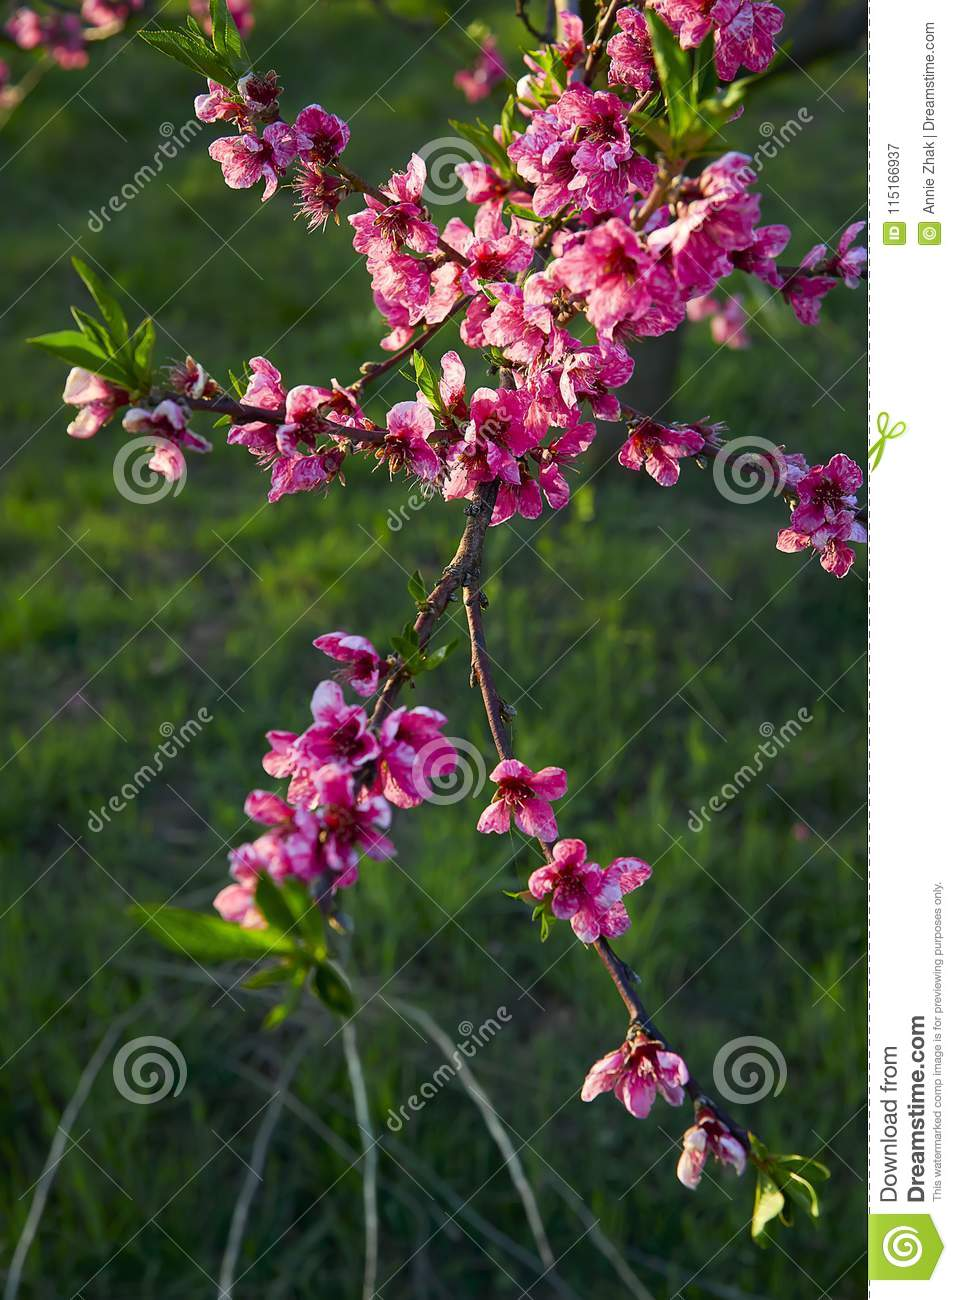 Blooming pink peach blossoms on tree stick with green background in the beginning of spring.